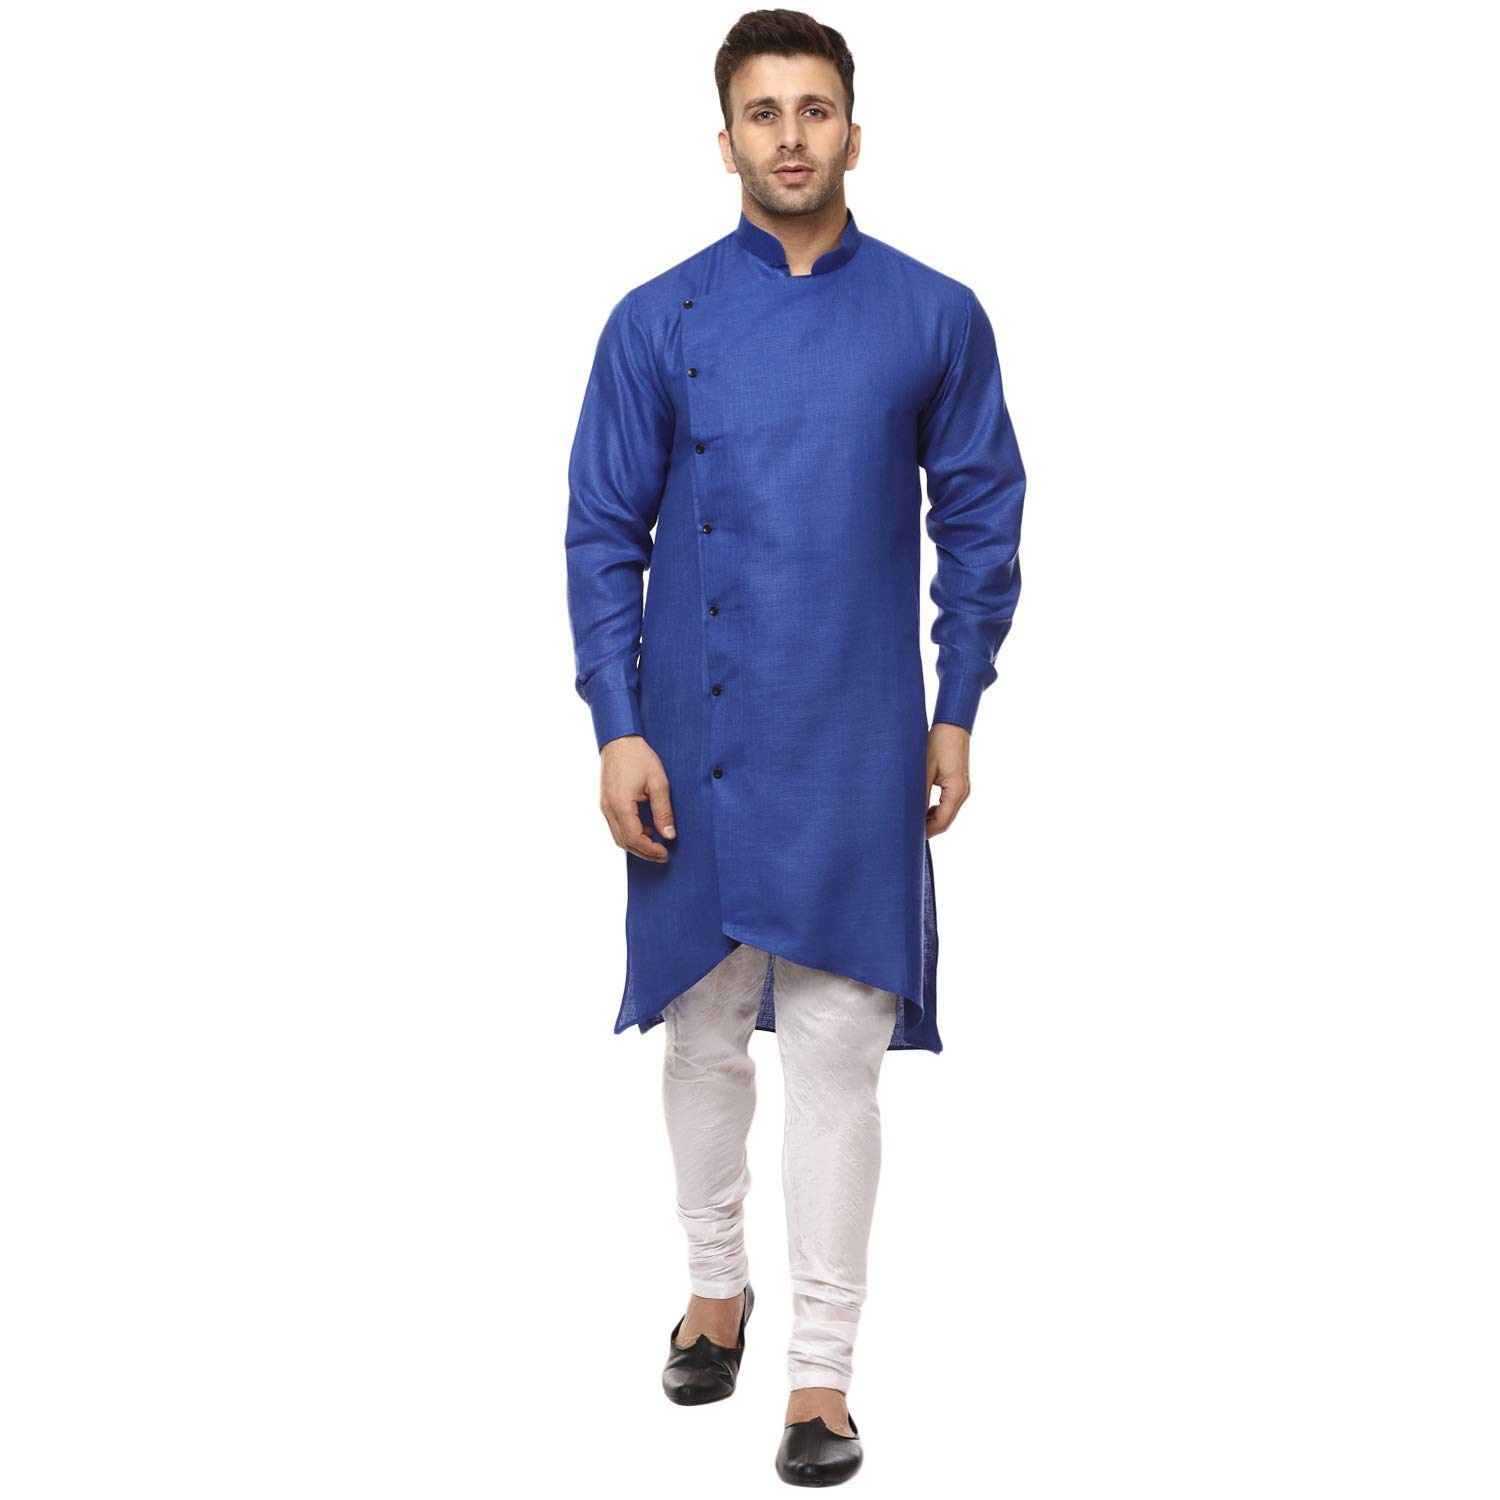 Royal Kurta Mens Cotton Angarakha Kurta Pyjama Set